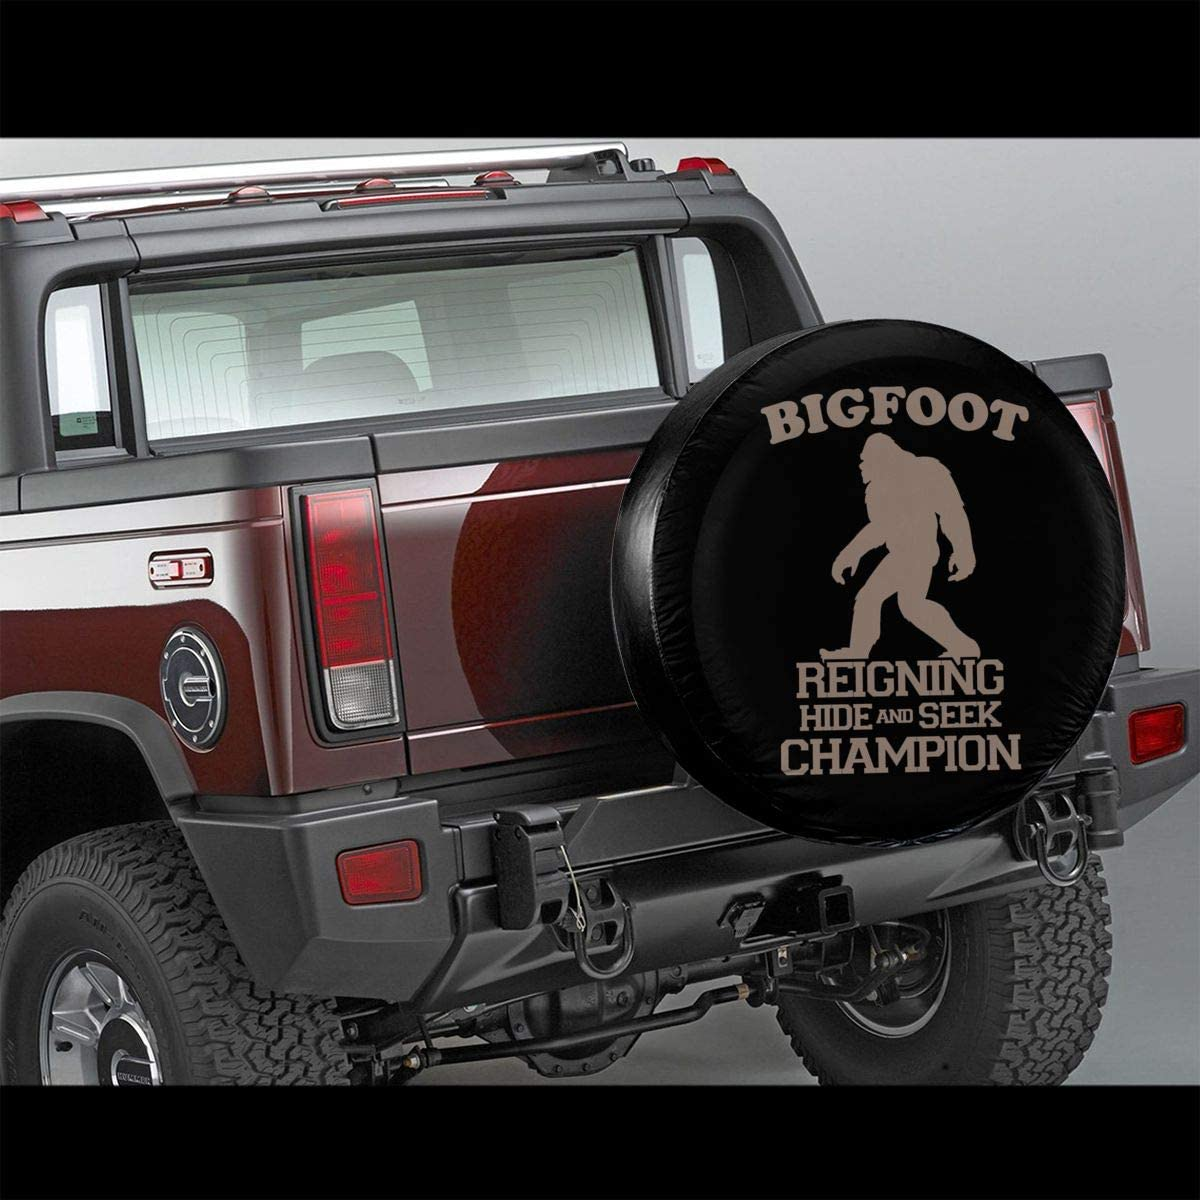 Trailer,RV,SUV,Truck and Vehicle Wheel 14 15 16 17 Wheel Tire Cover Weather-Proof 66JR Spare Tire Covers Bigfoot Hide and Seek Print Universal Fit for Jeep